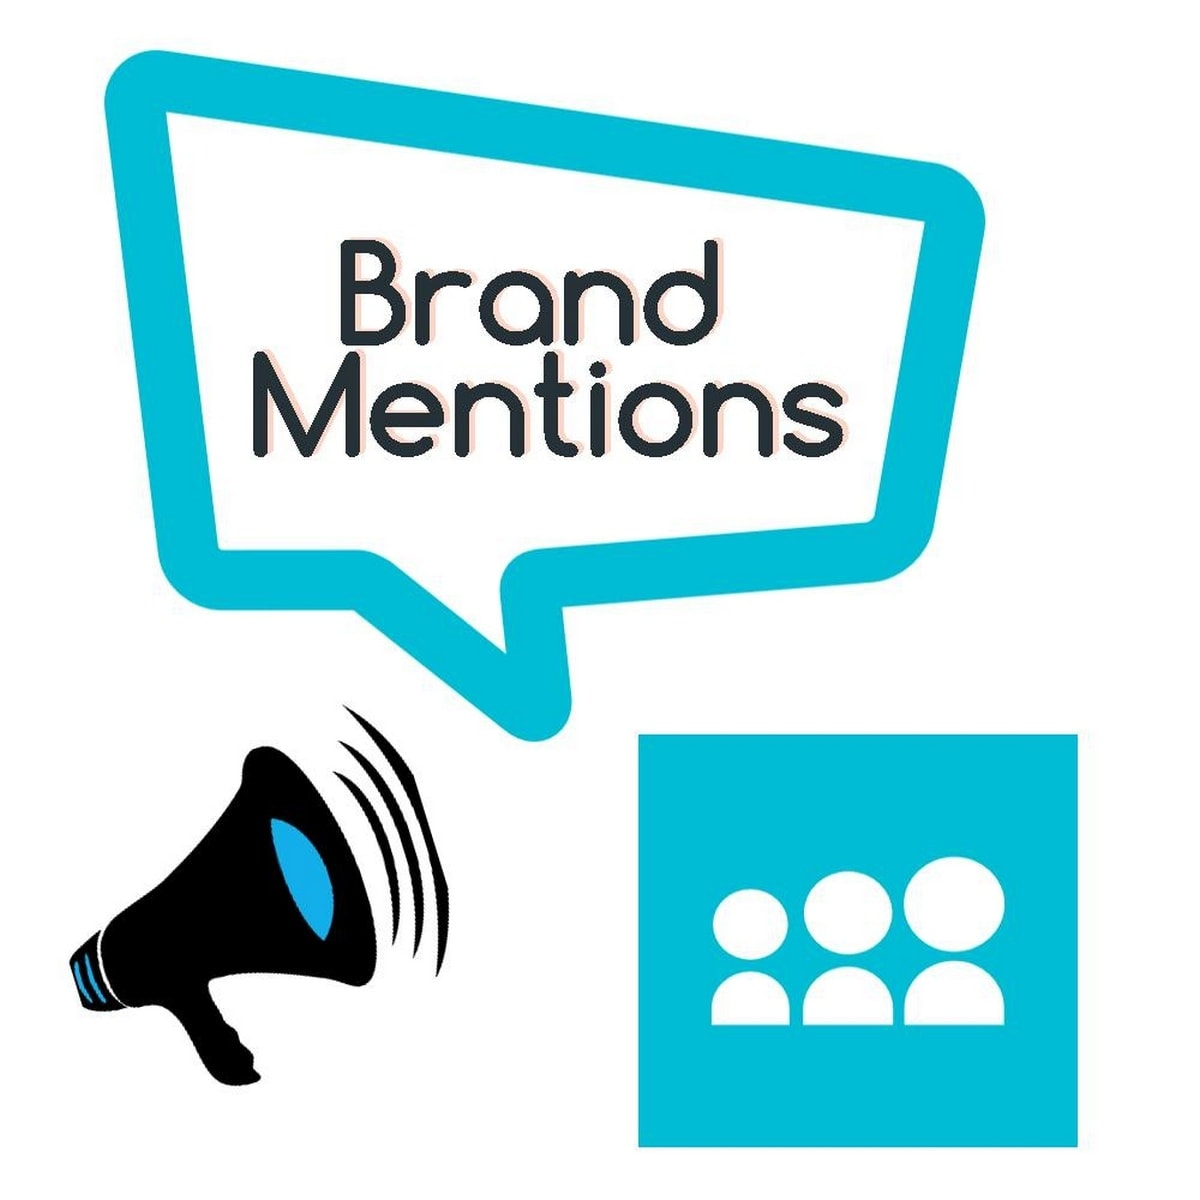 Brand Mentions - 6